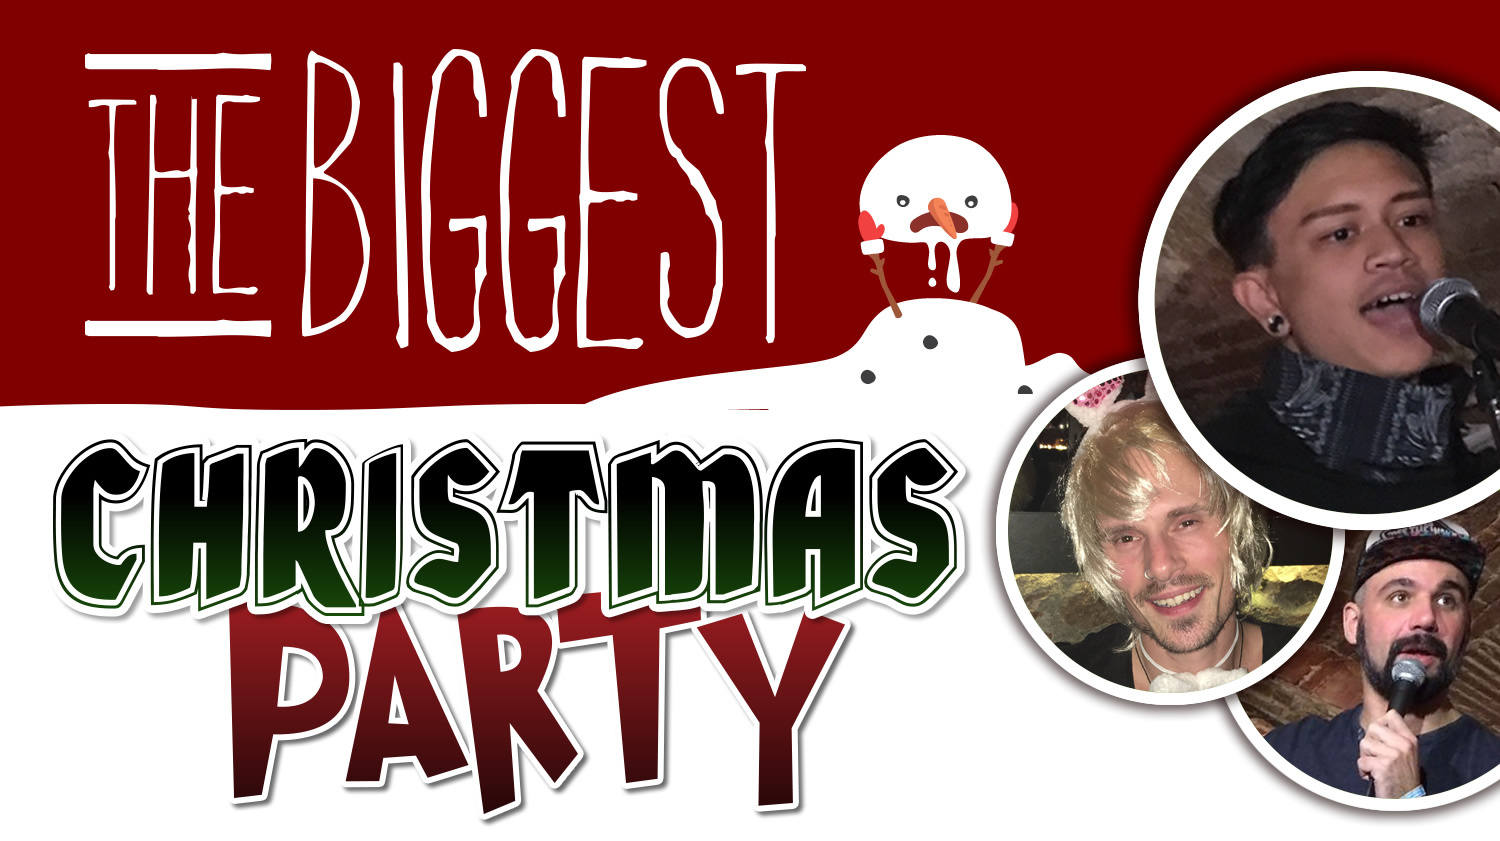 The Biggest Christmas Party in Barcelona – Live Music & Comedy